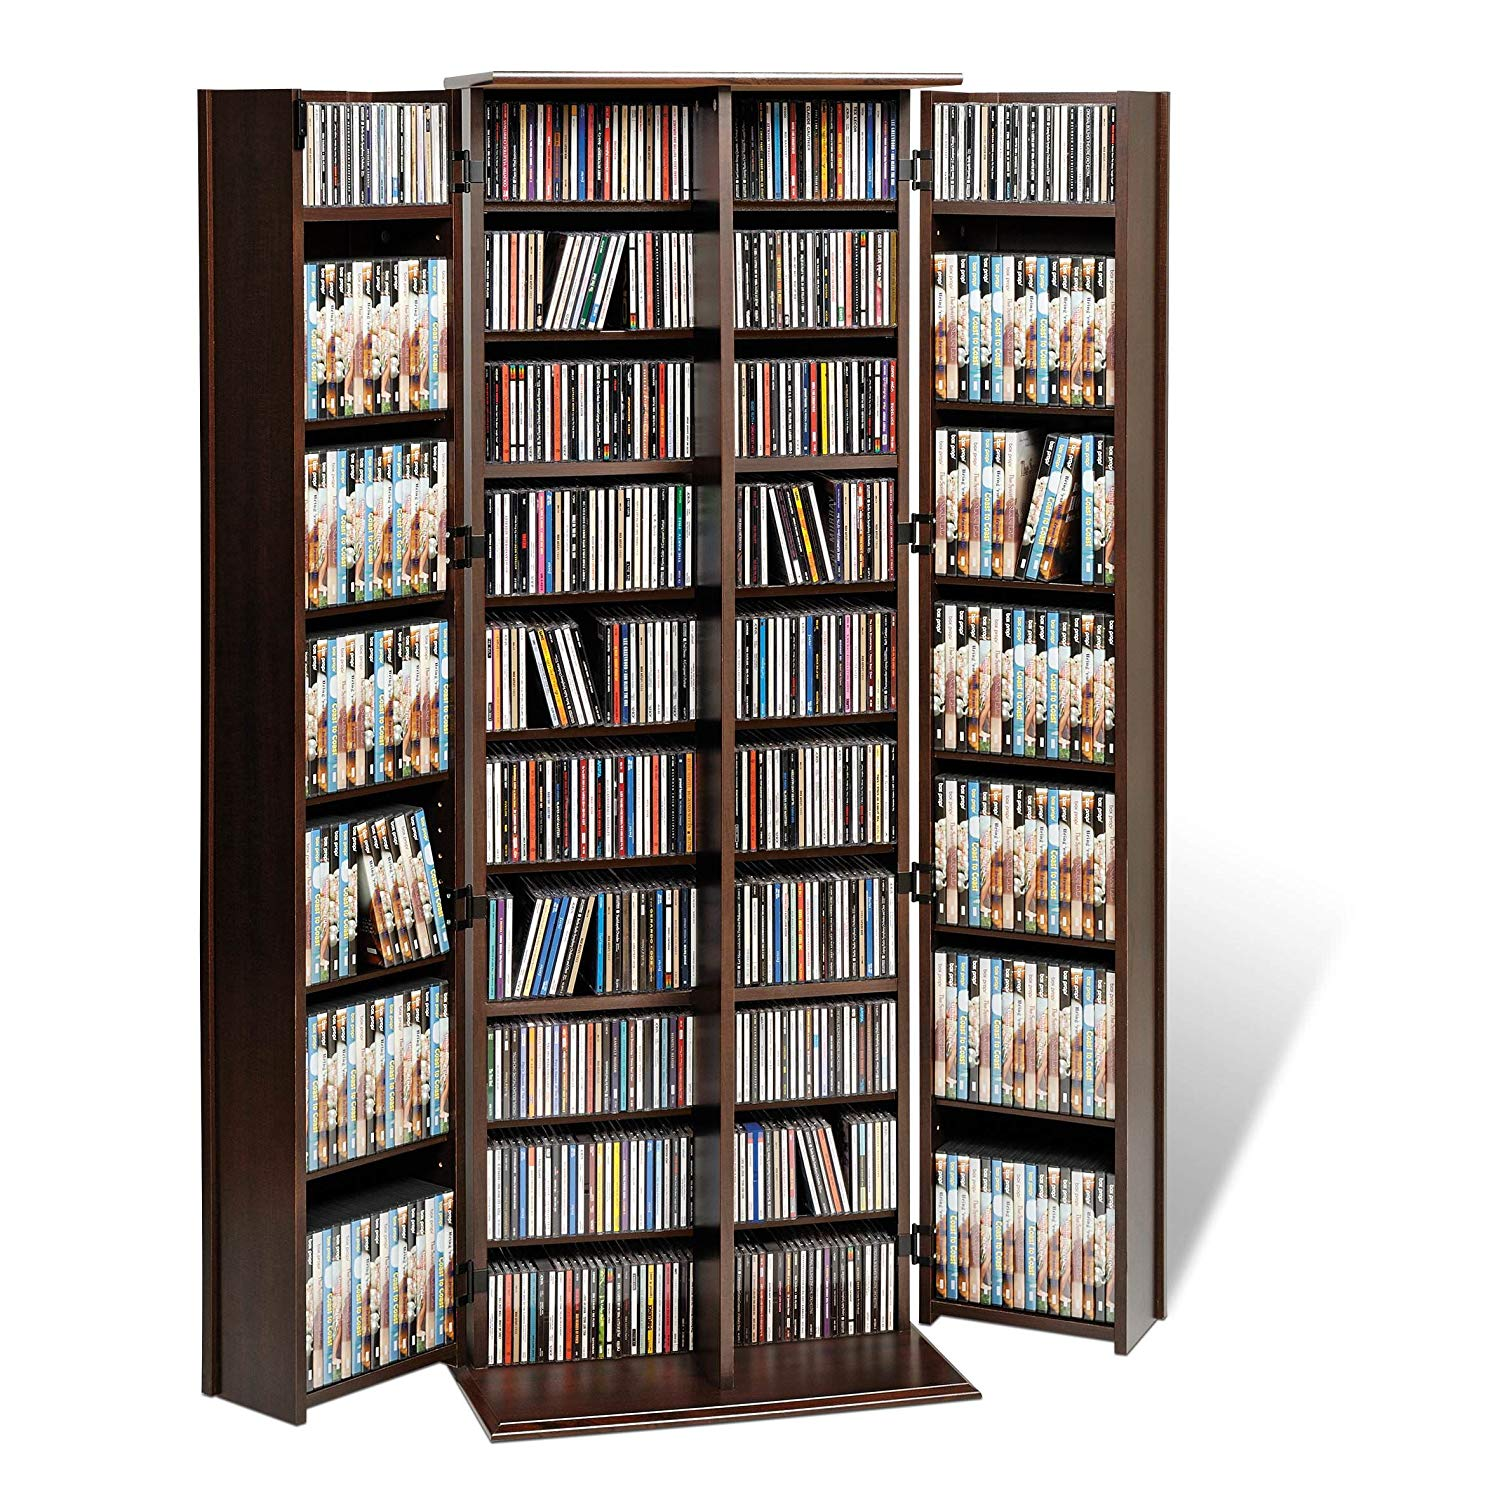 Classy Indoor Grande Locking Media Storage Cabinet with Shaker Doors, Traditional Style And Practical Function, Fully Adjustable Shelves, Locking Doors, Wood Construction, Espresso Finish